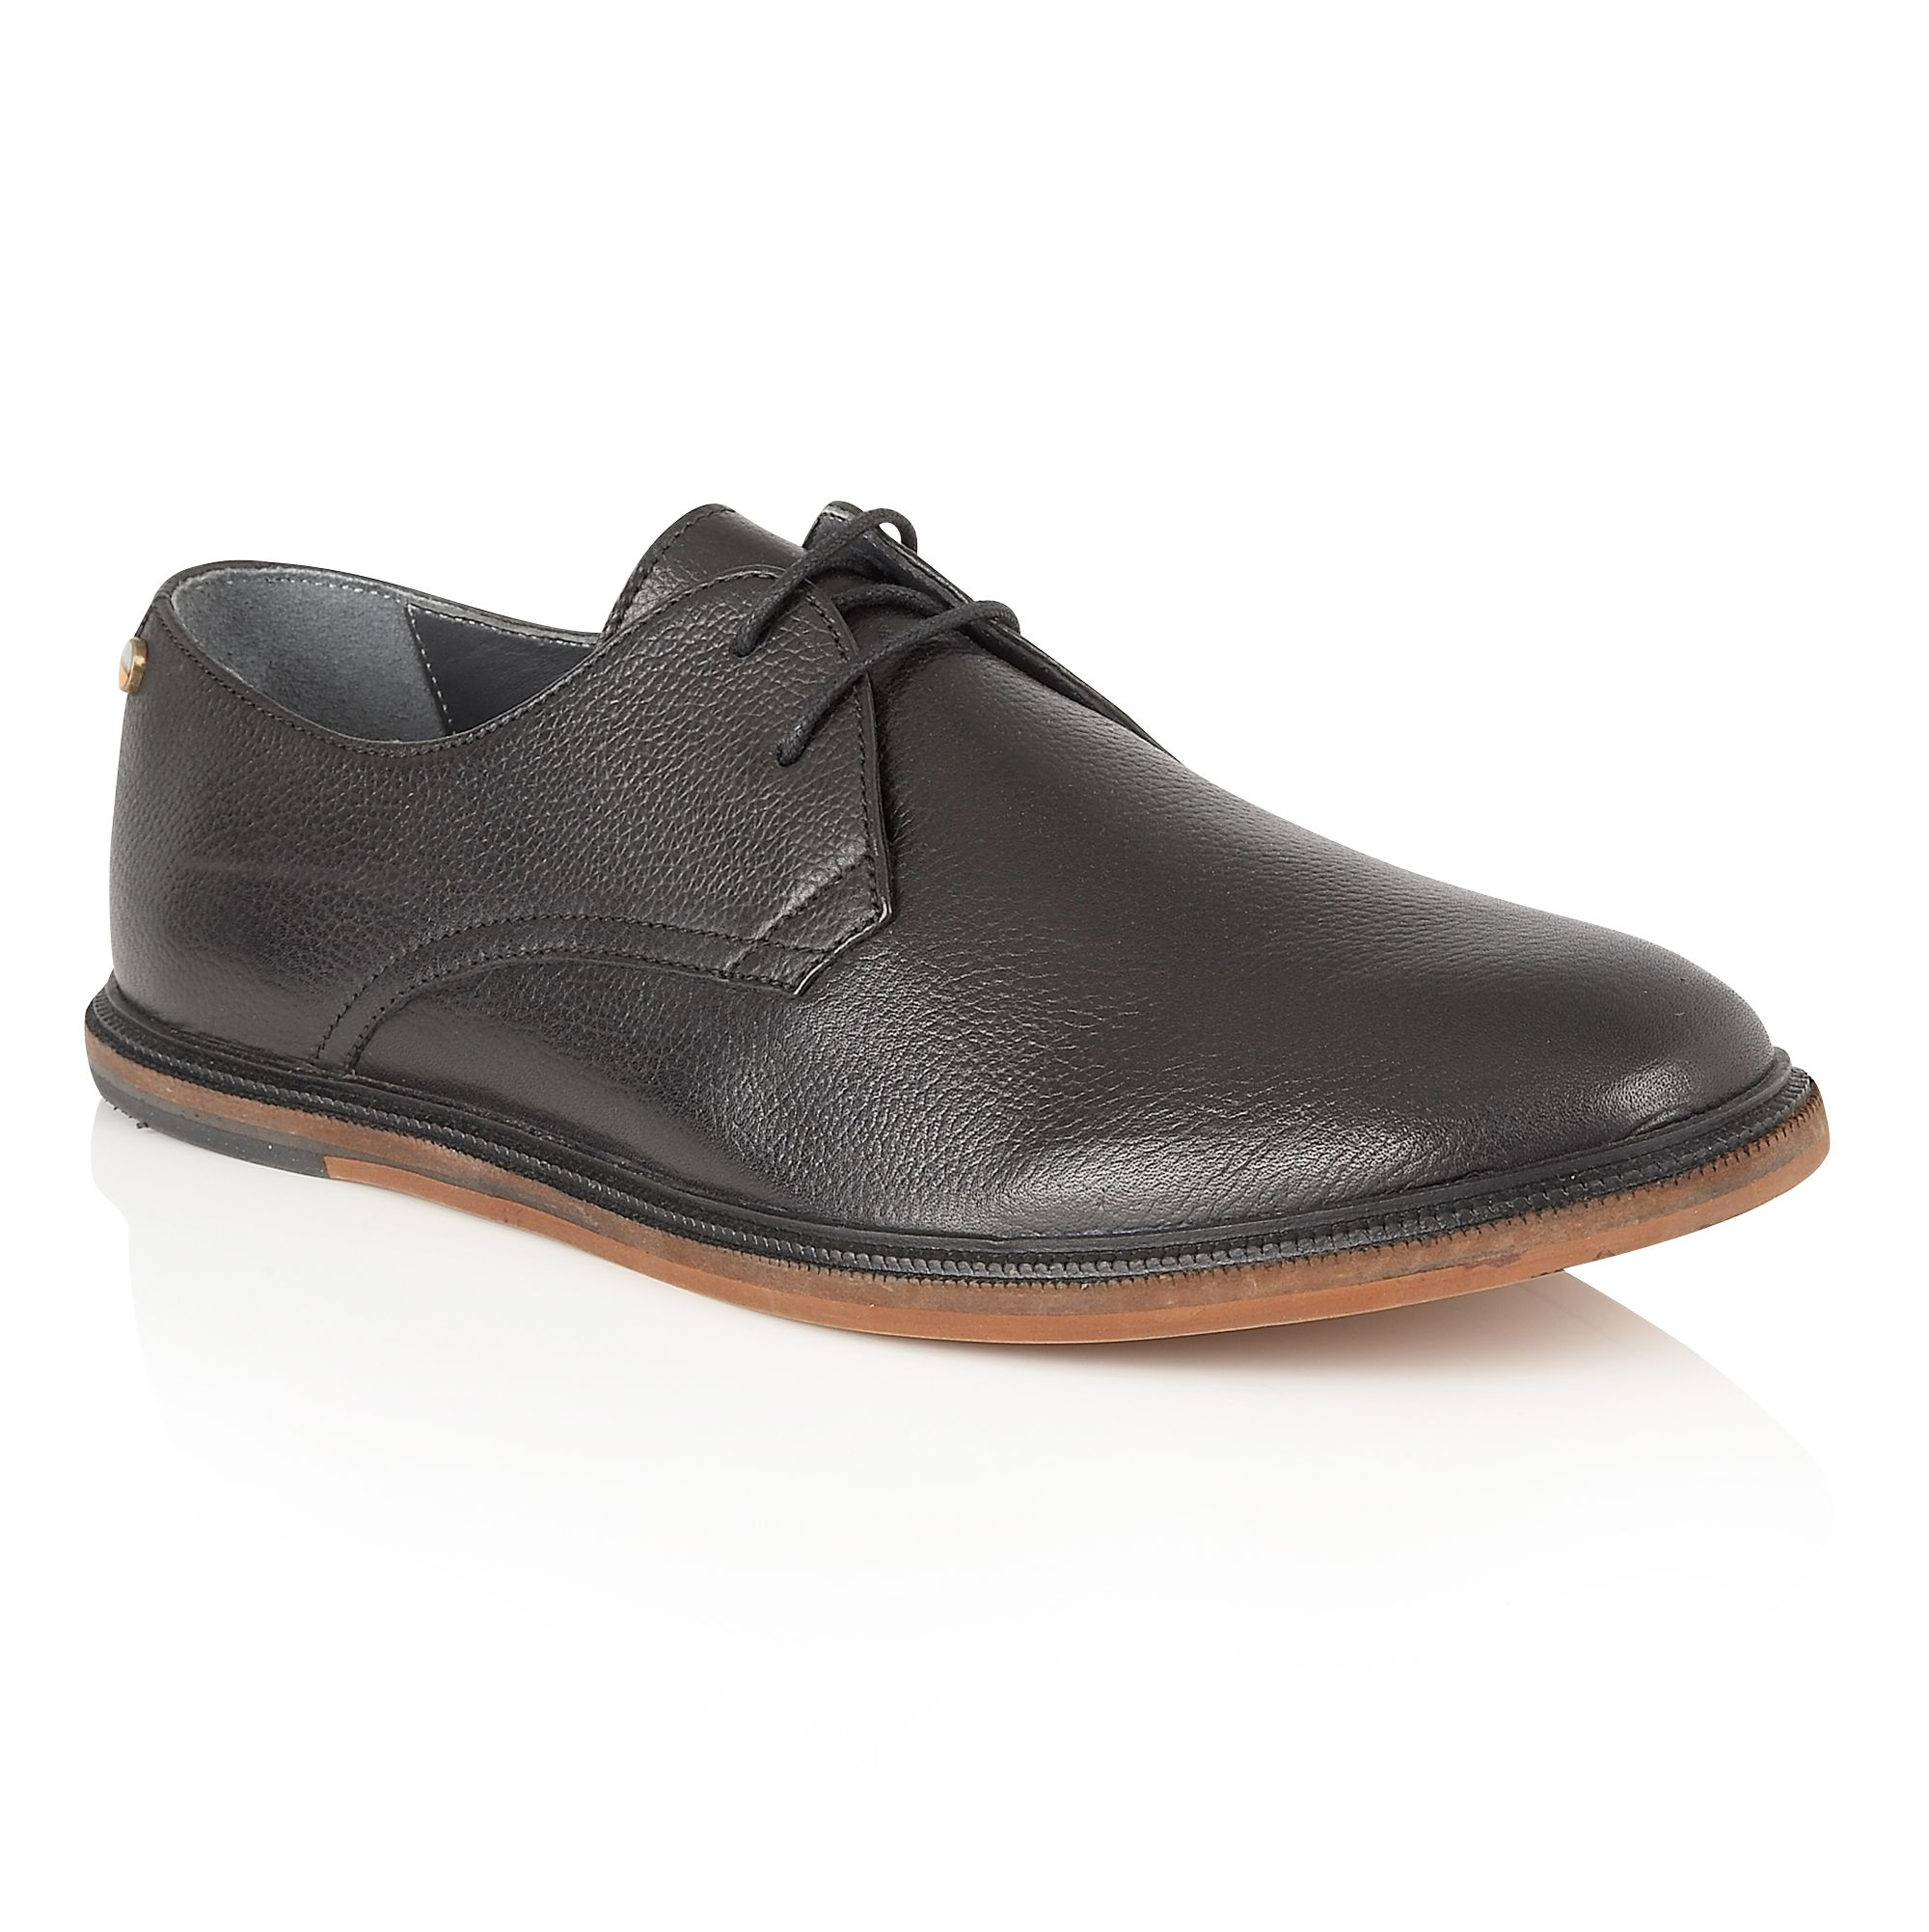 Frank Wright Frank Wright Burley Mens Shoes, Black